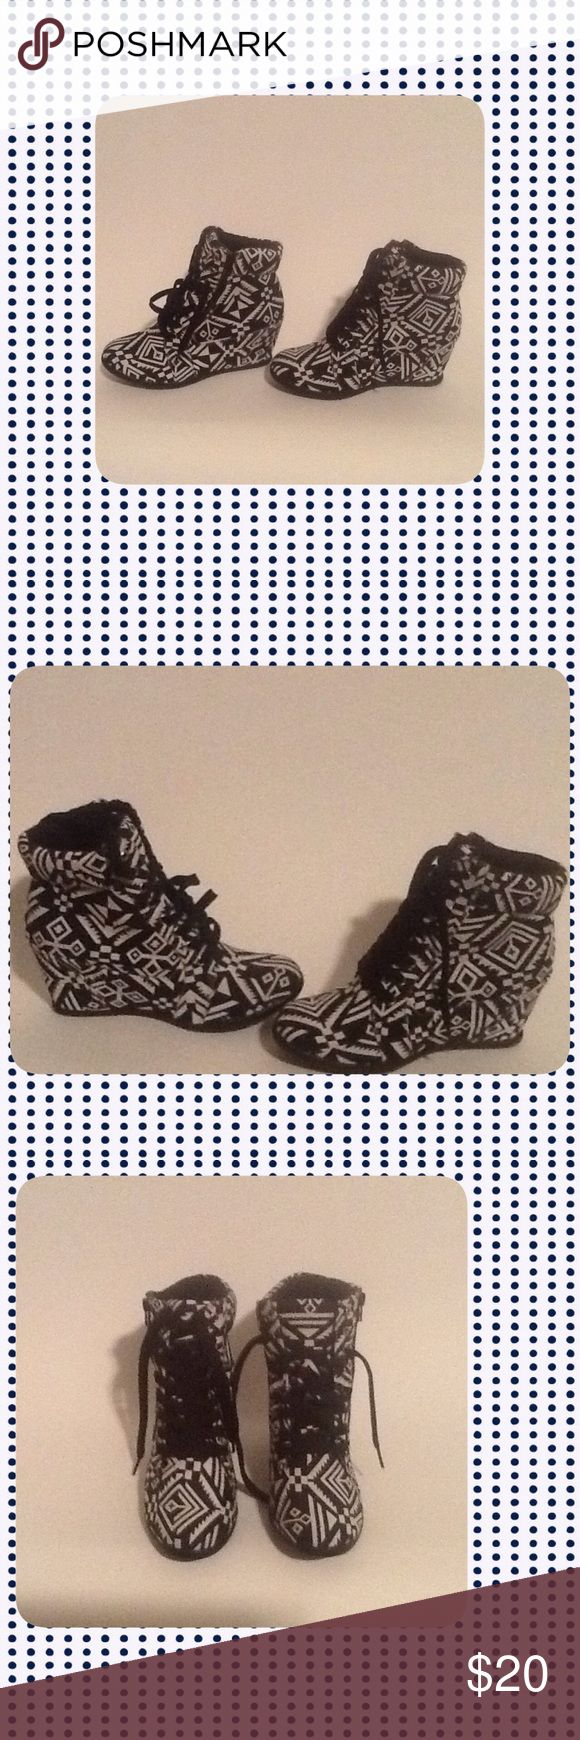 Black Aztec Wedge Shoes These shoes are New and have Never been Worn!!! The wedge shoes are similar to wedge sneakers so they are very comfortable. To keep Shipping low I will ship Without the Box!!! Reasonable Offers Only!!! Top Moda Shoes Wedges